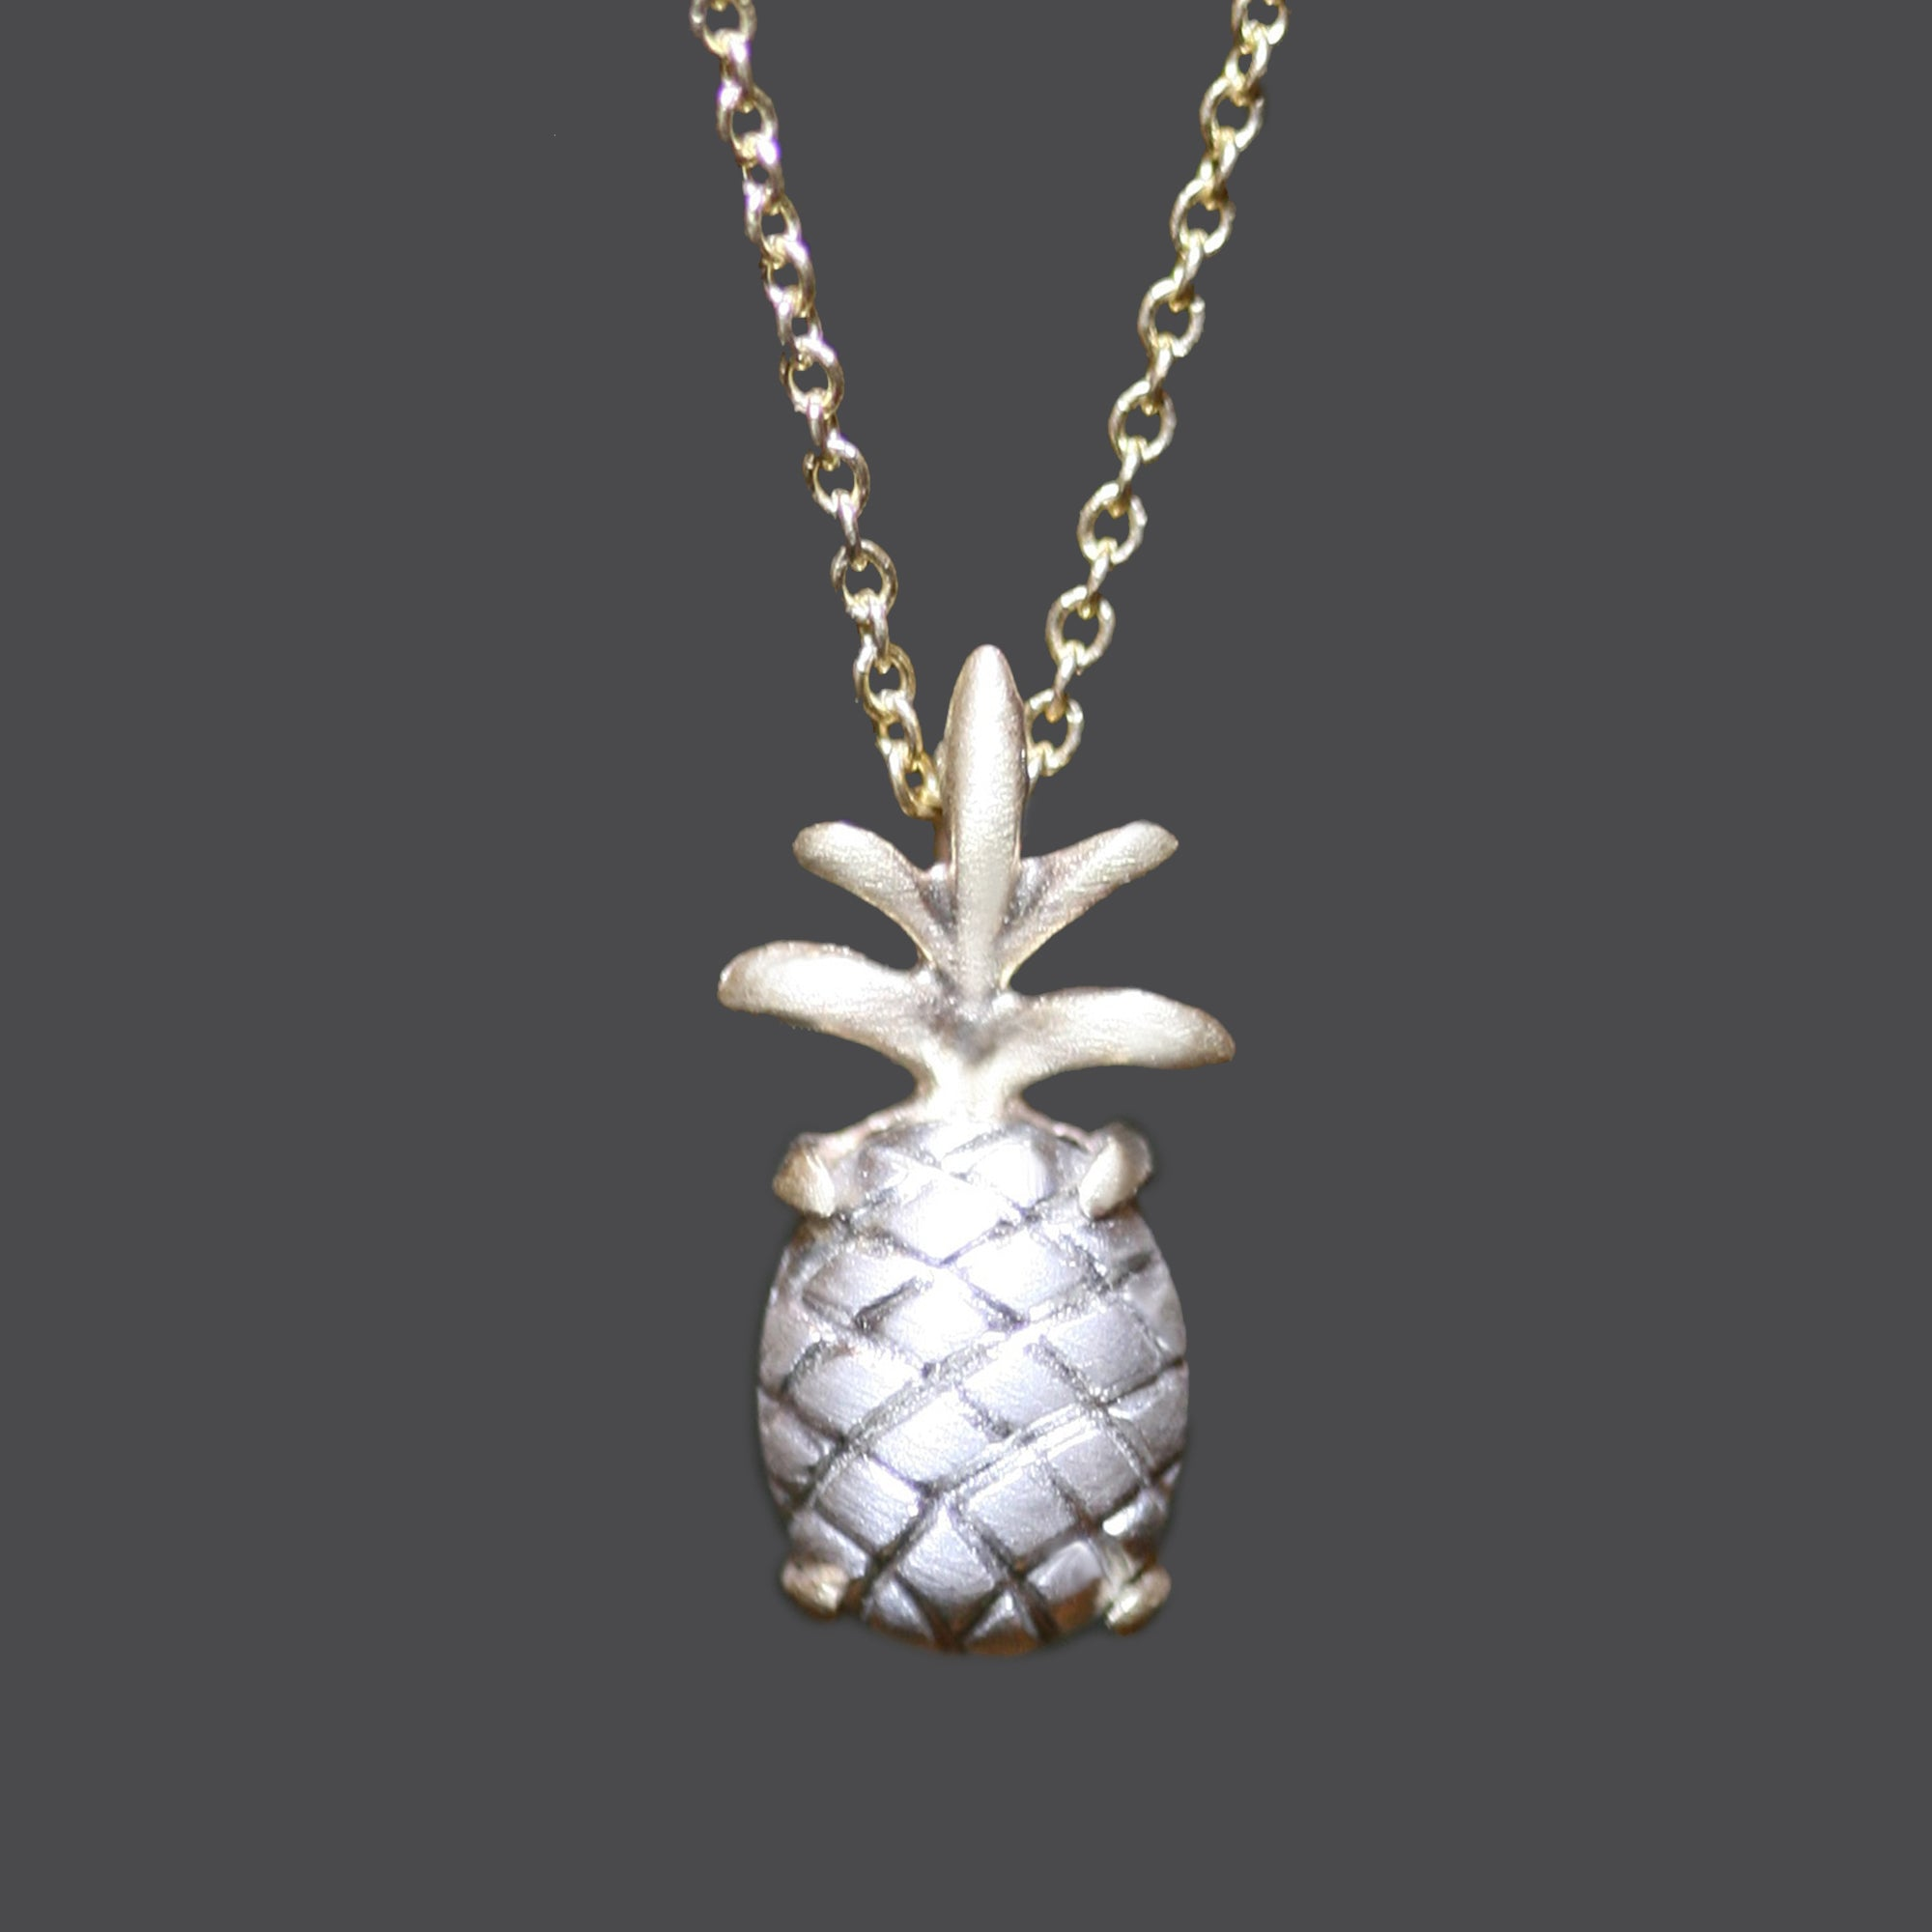 pineapple laha necklace designs ole products image